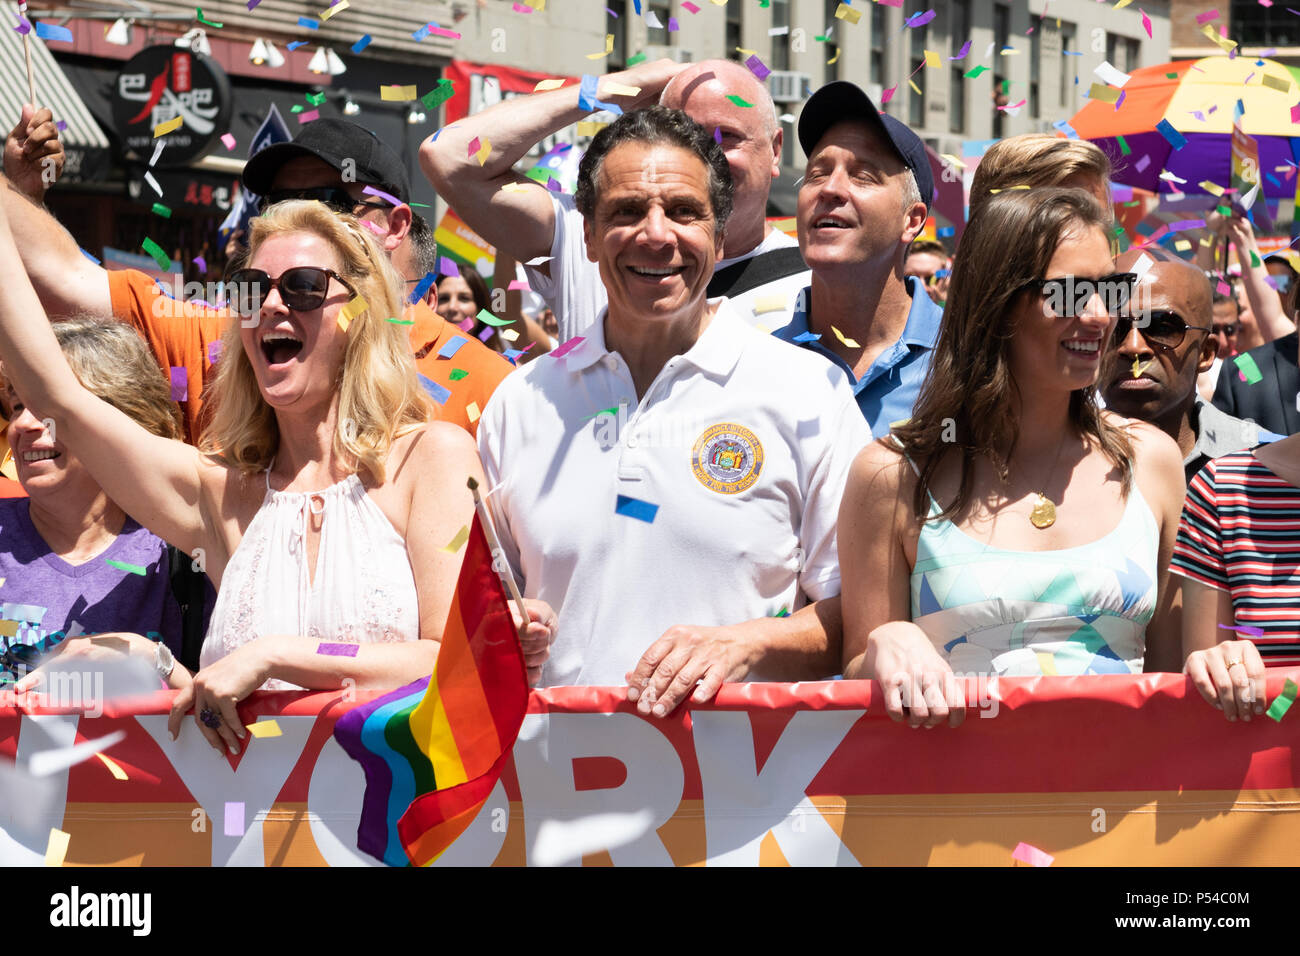 New York State Governor Andrew Cuomo (D) at the Pride March in New York City. Thousands took part in the annual Pride March in New York City to promote LGBT right. - Stock Image